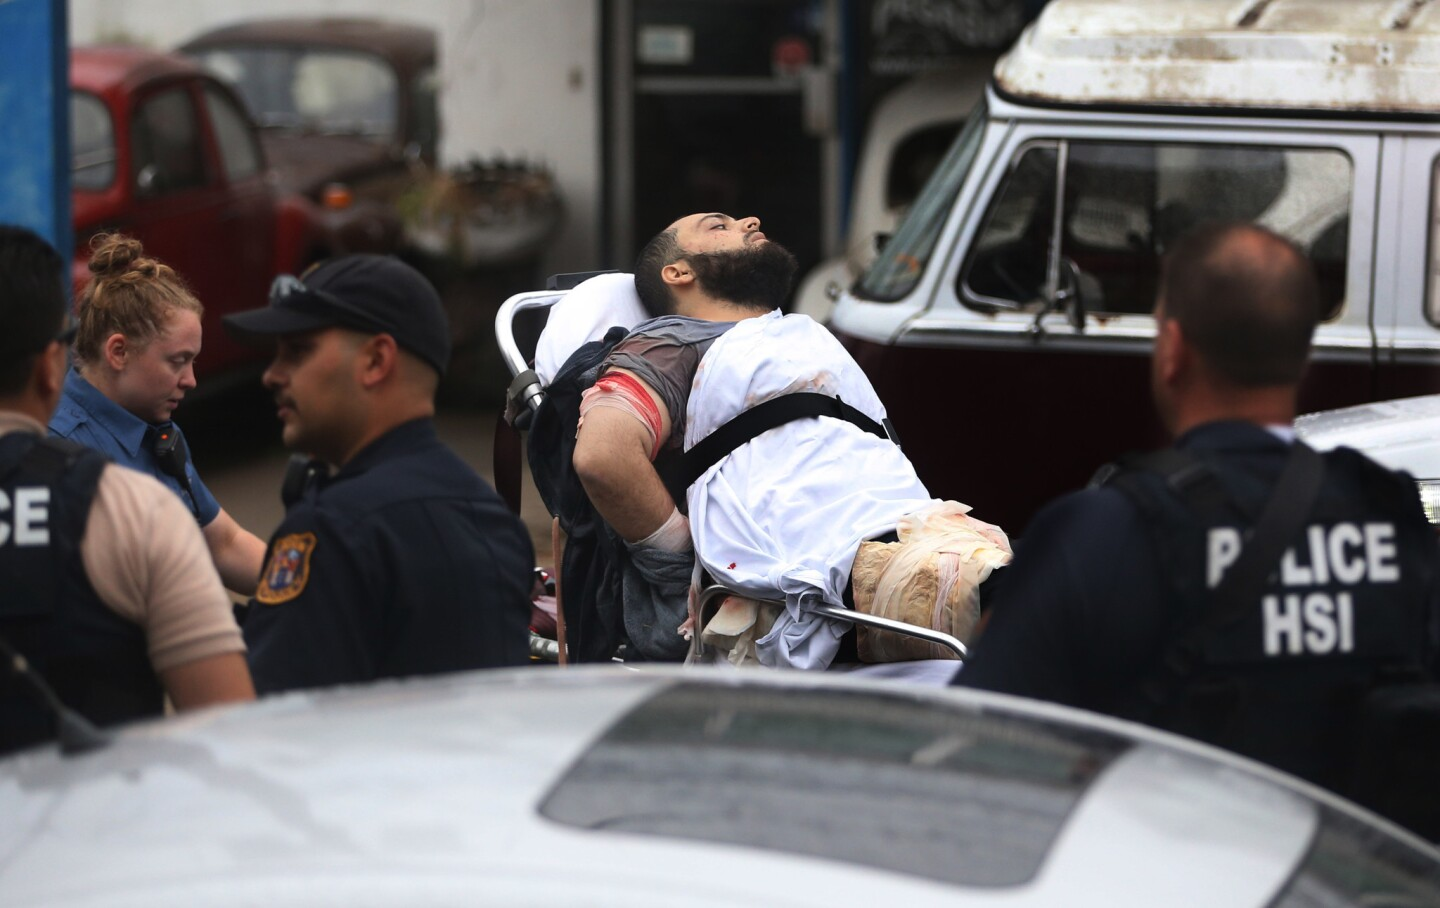 Ahmad Khan Rahami is transferred to an ambulance after being taken into custody following a Sept. 19 shootout with police in Linden, N.J.